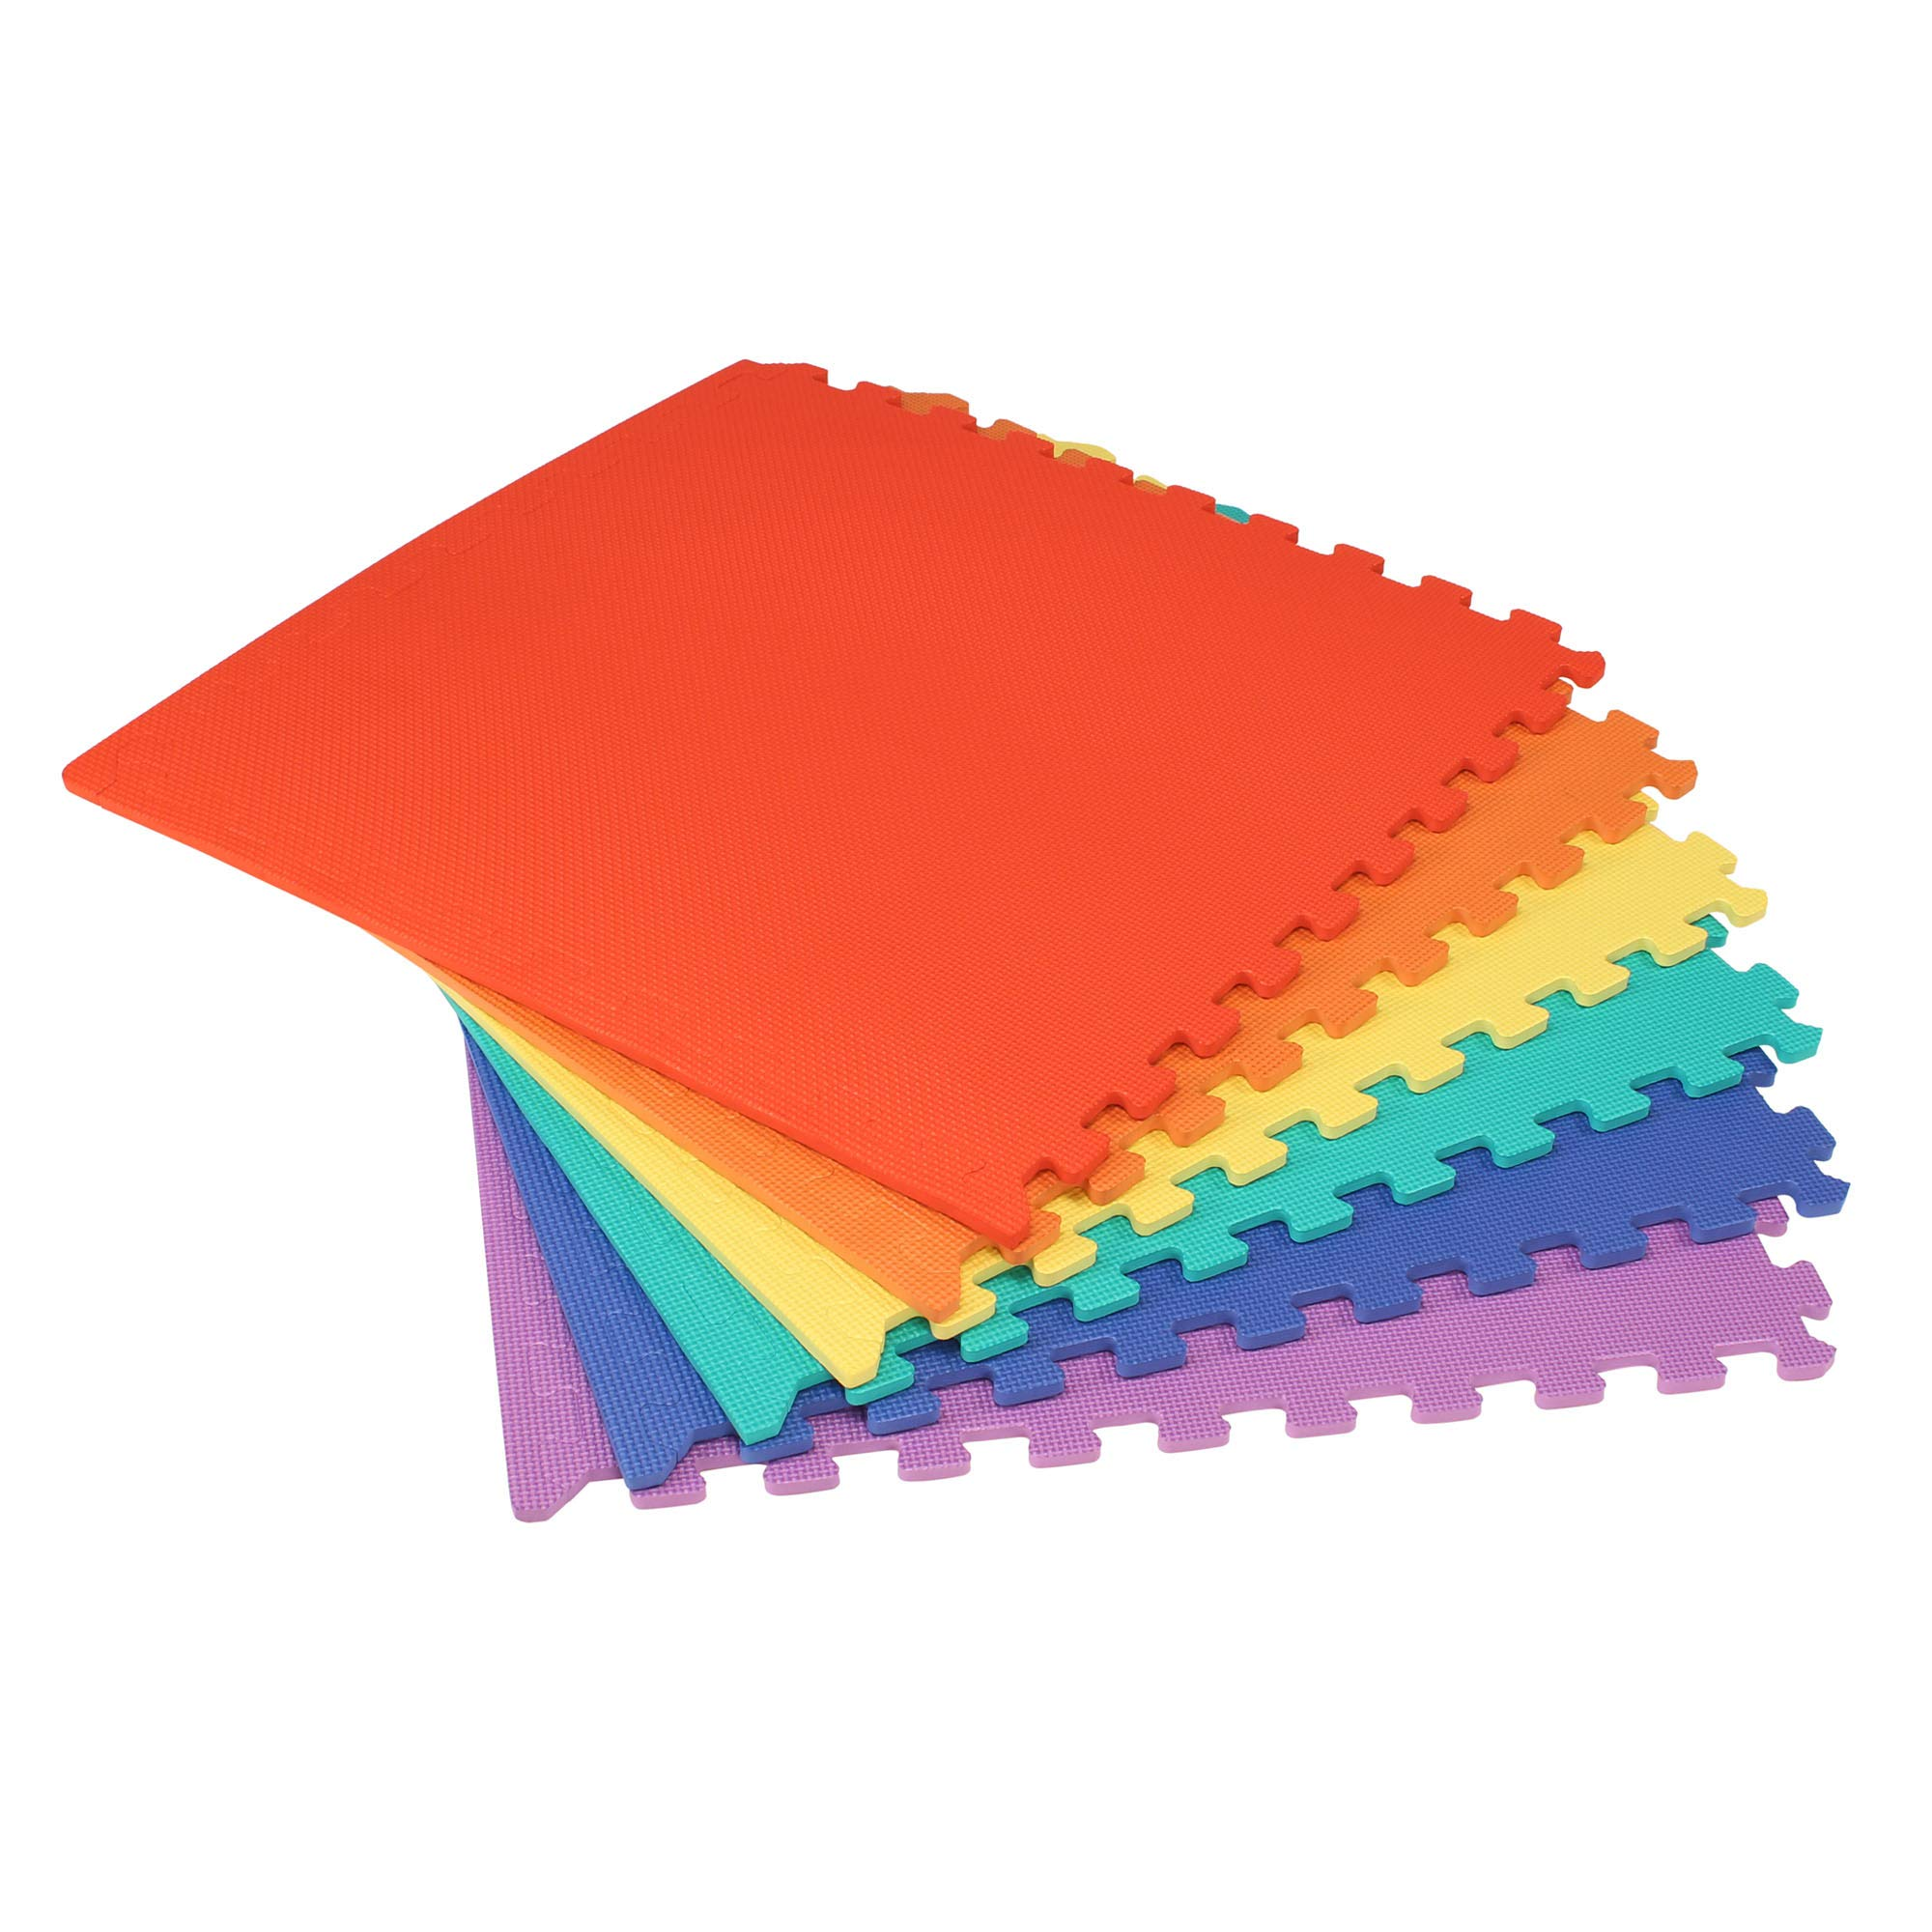 We Sell Mats Multi Color 200 Sq Ft (50 Assorted Tiles + Borders) Foam Interlocking Anti-Fatigue Exercise Gym Floor Square Trade Show Tiles